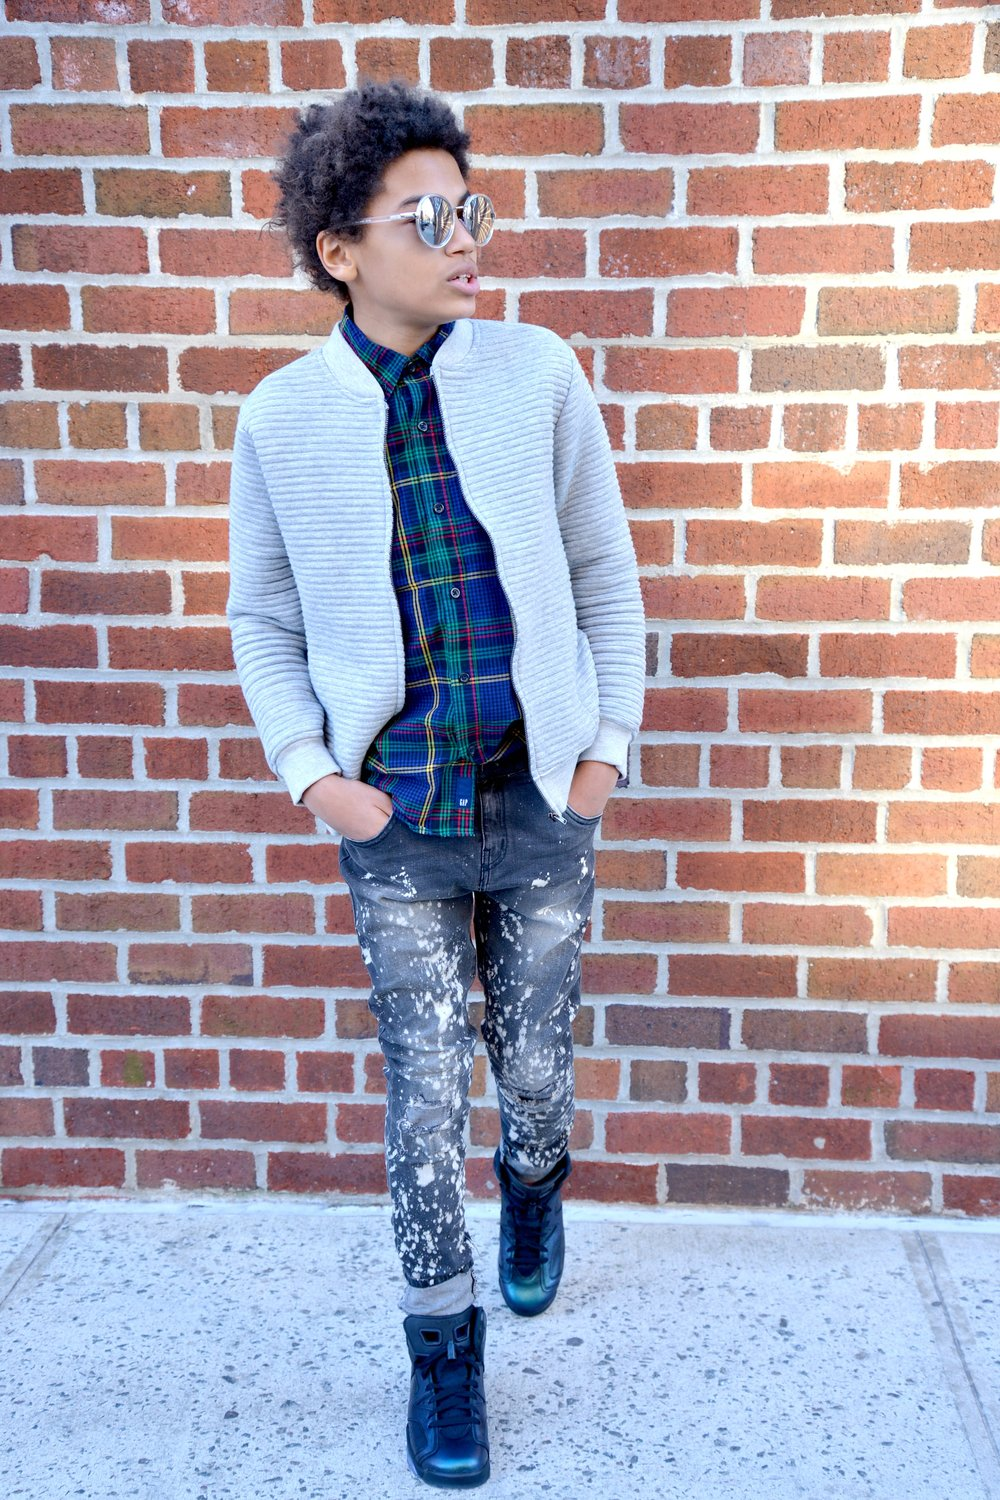 JACKET + DENIM: Zara   SHIRT: Gap Kids   SNEAKERS: Kids Foot Locker